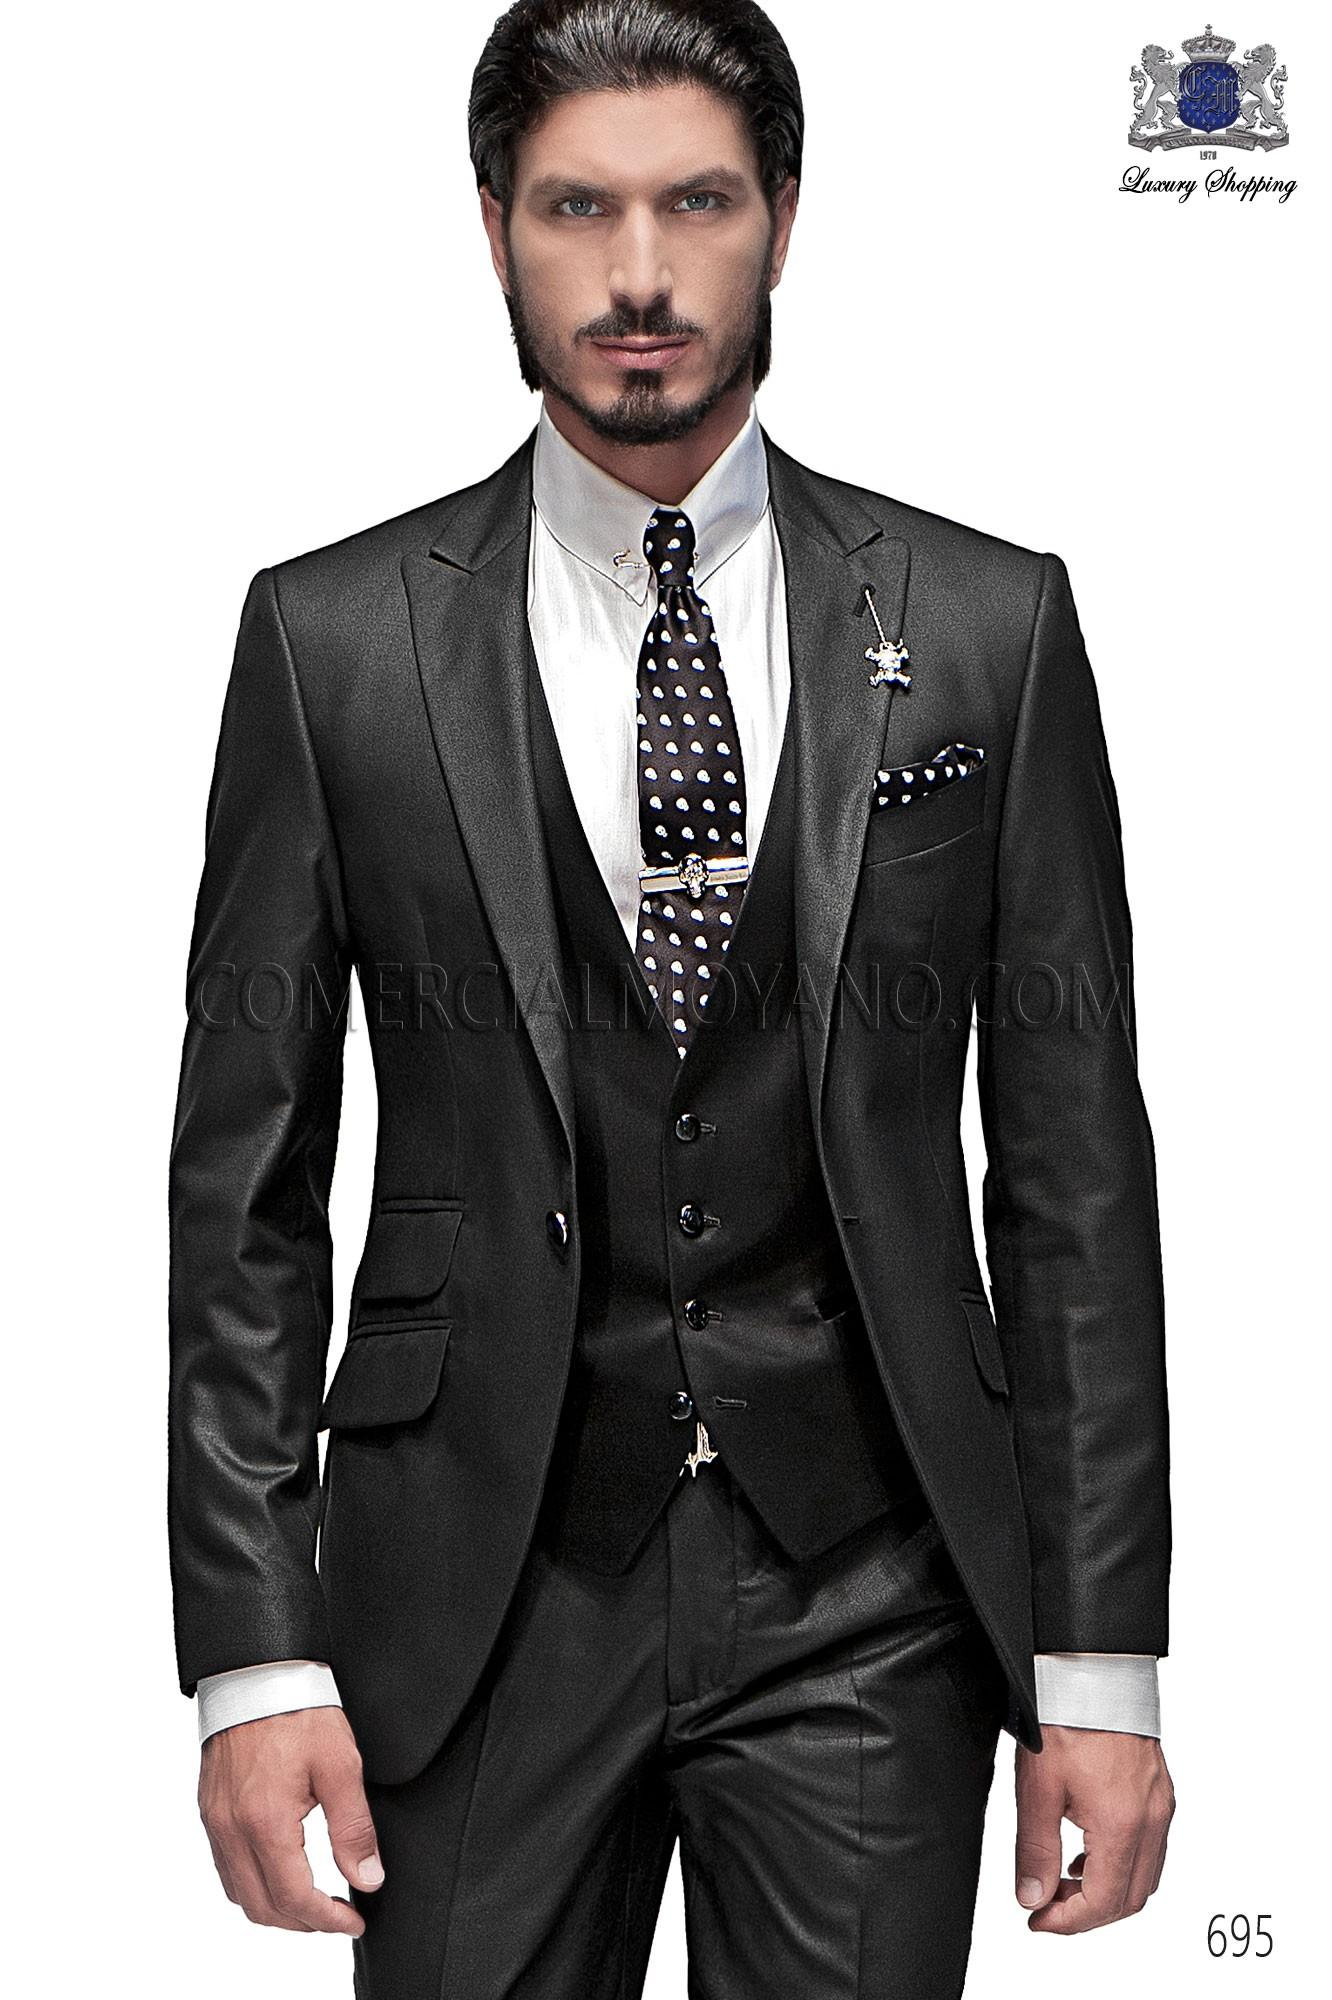 groom men Find and save ideas about groom attire on pinterest | see more ideas about wedding groom attire, groom style and men wedding suits.